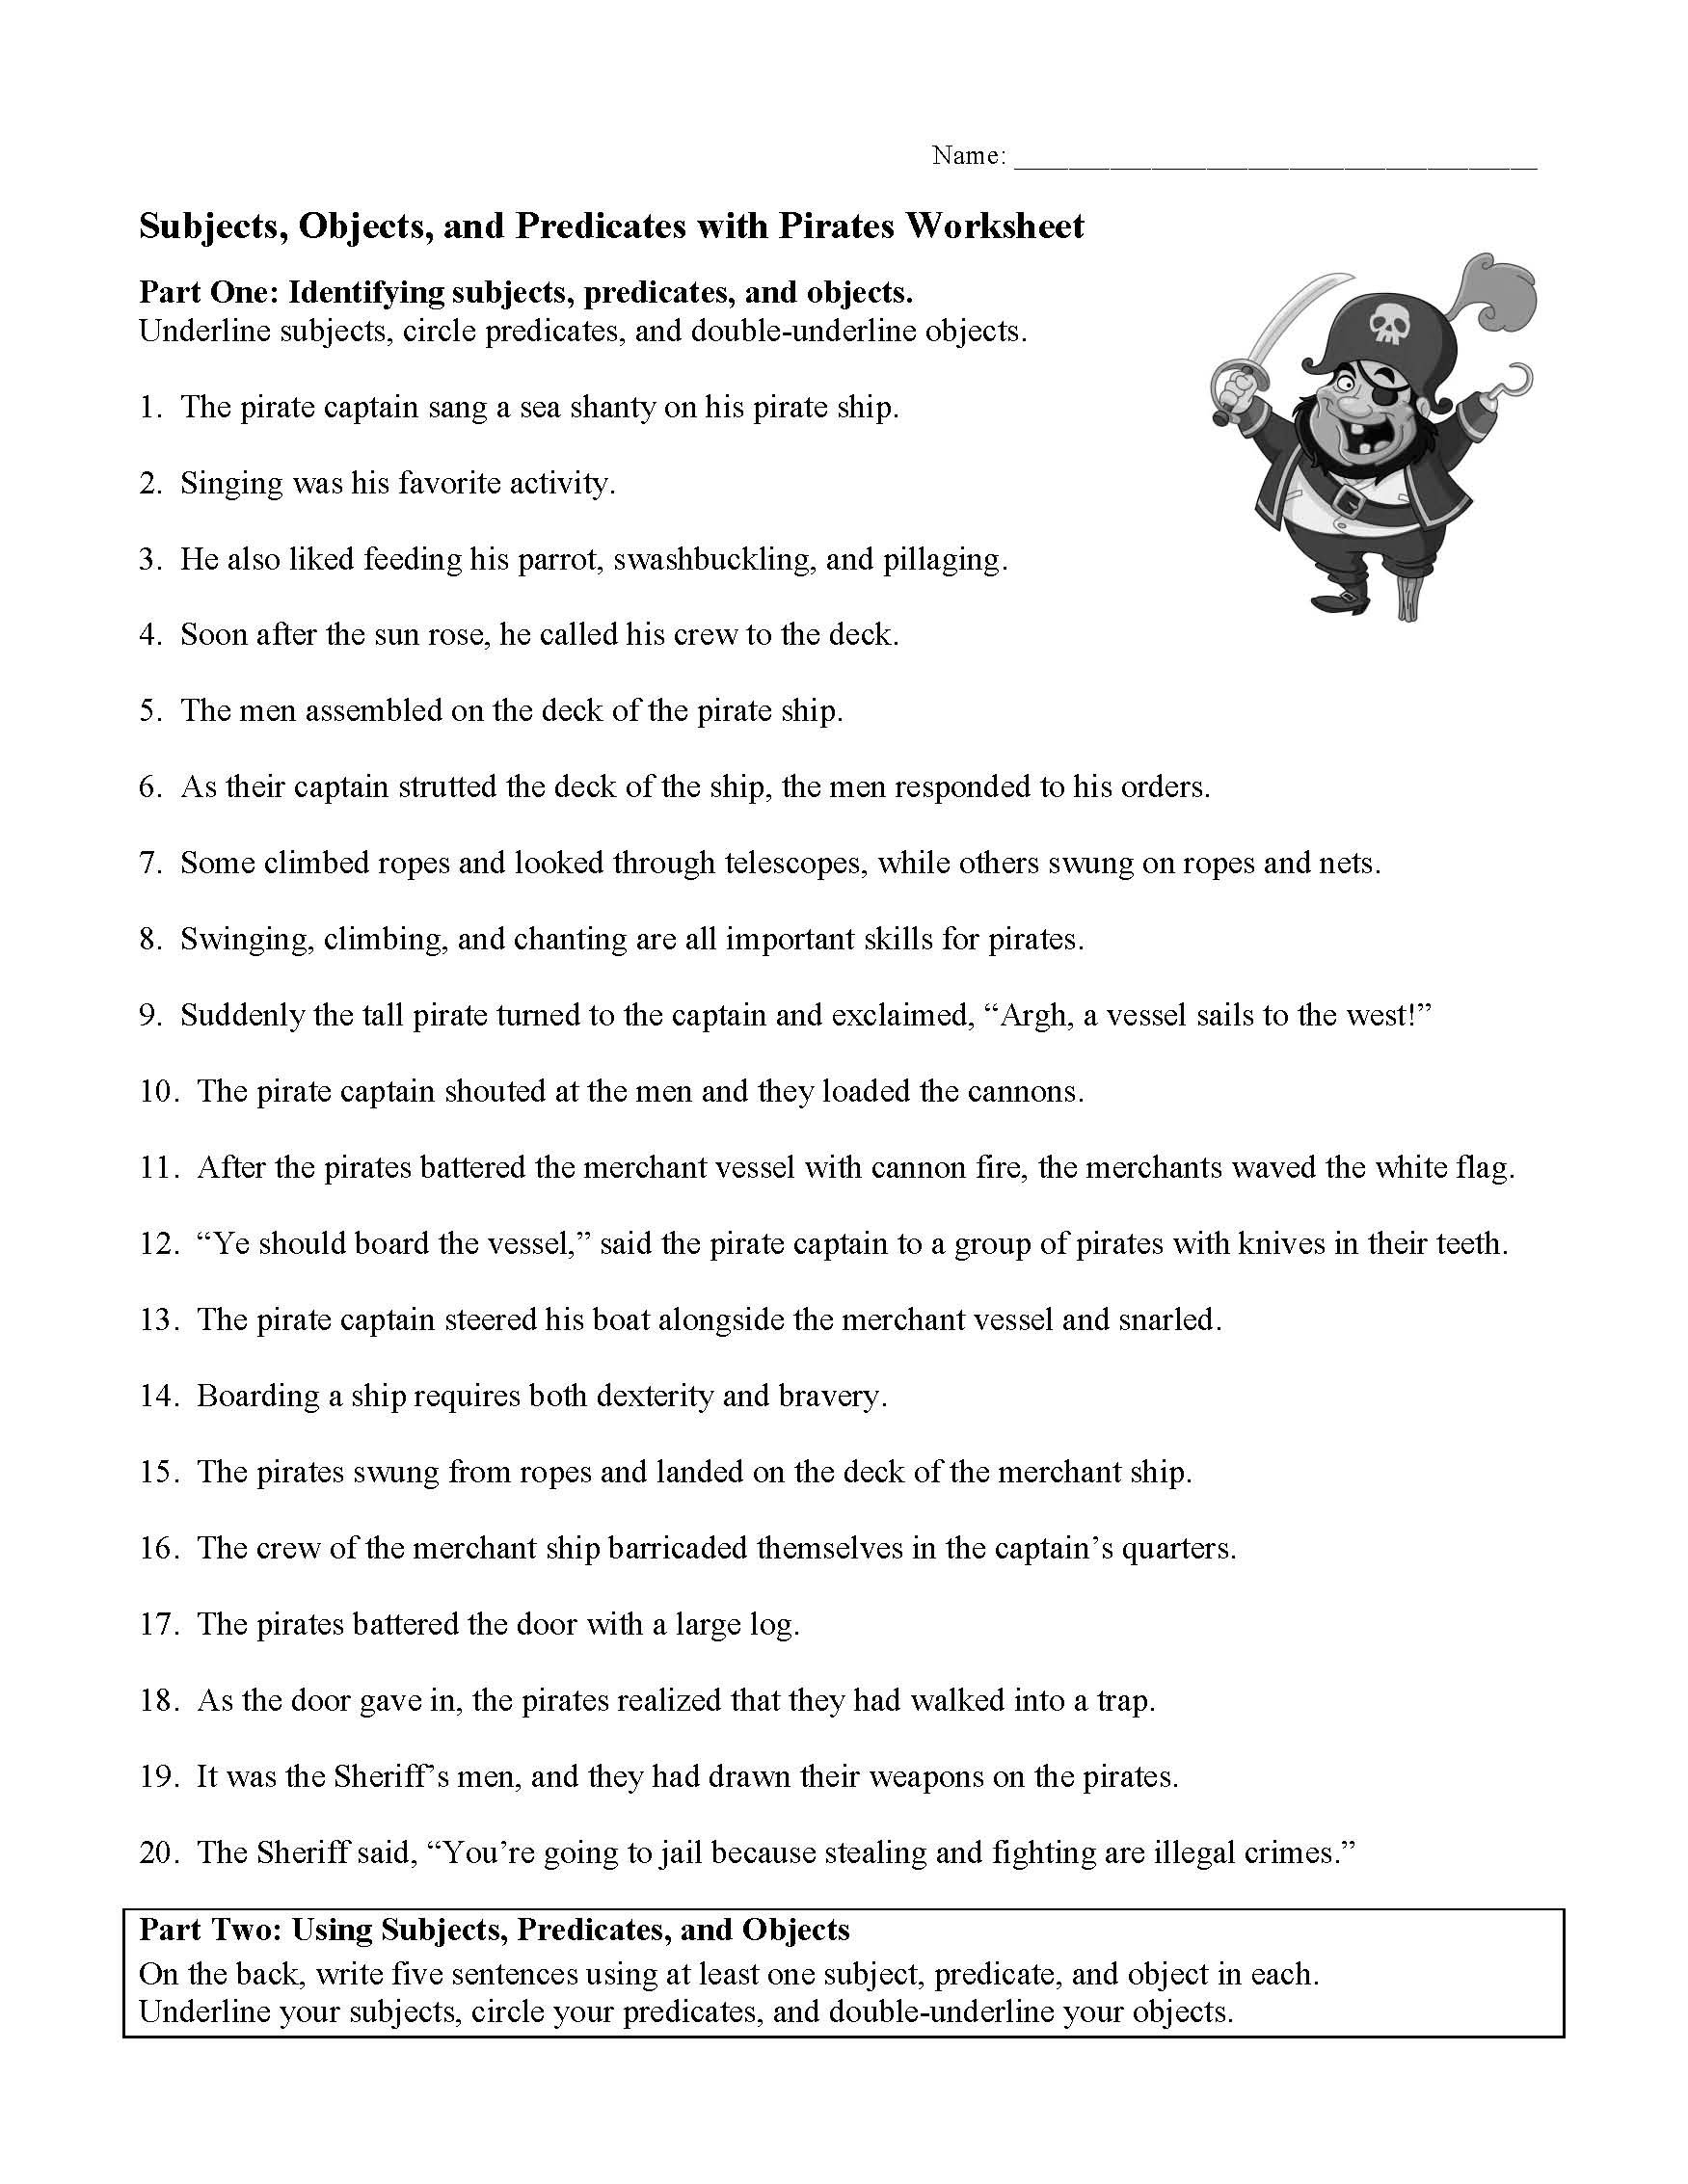 Subjects Objects And Predicates With Pirates Worksheet